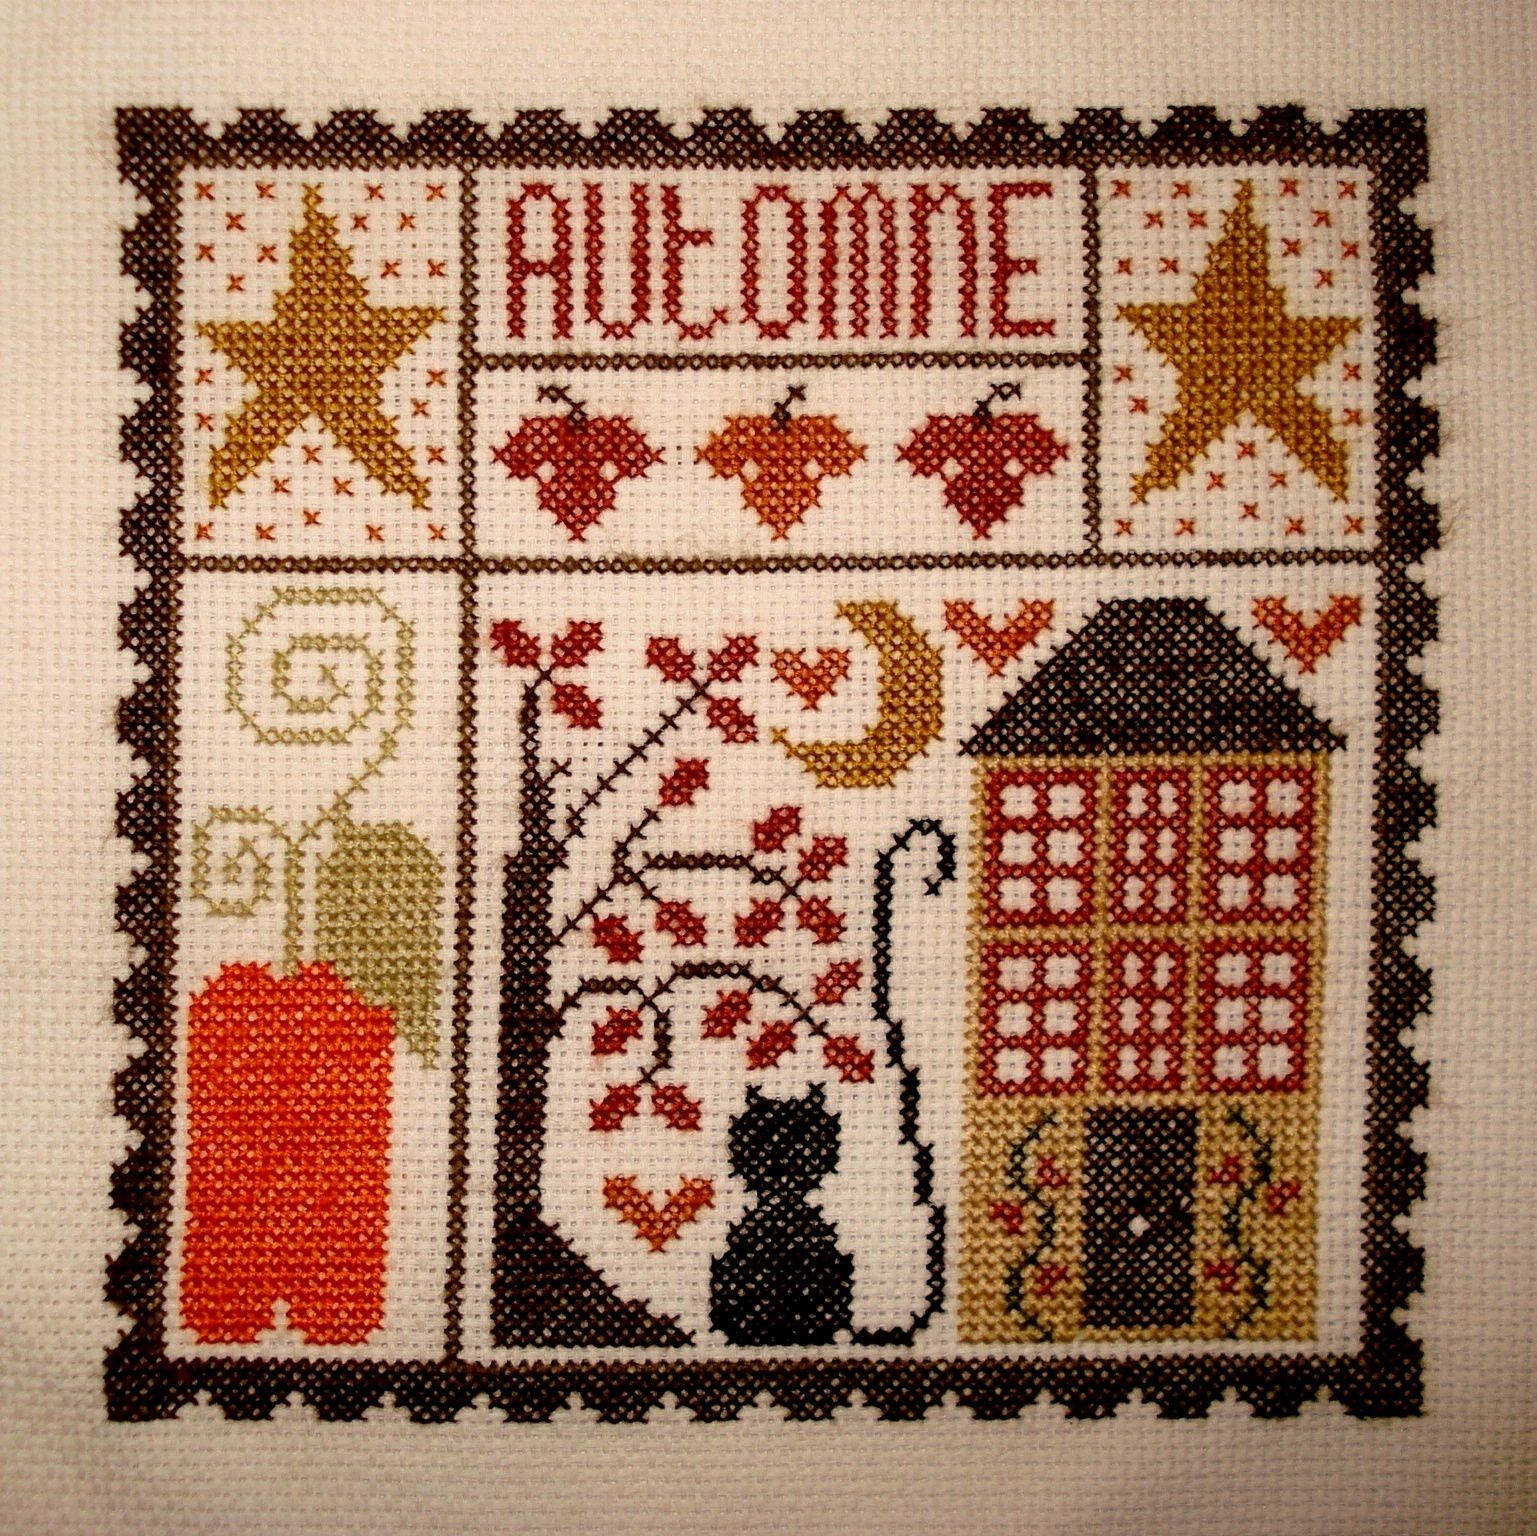 Broderie d'automne.